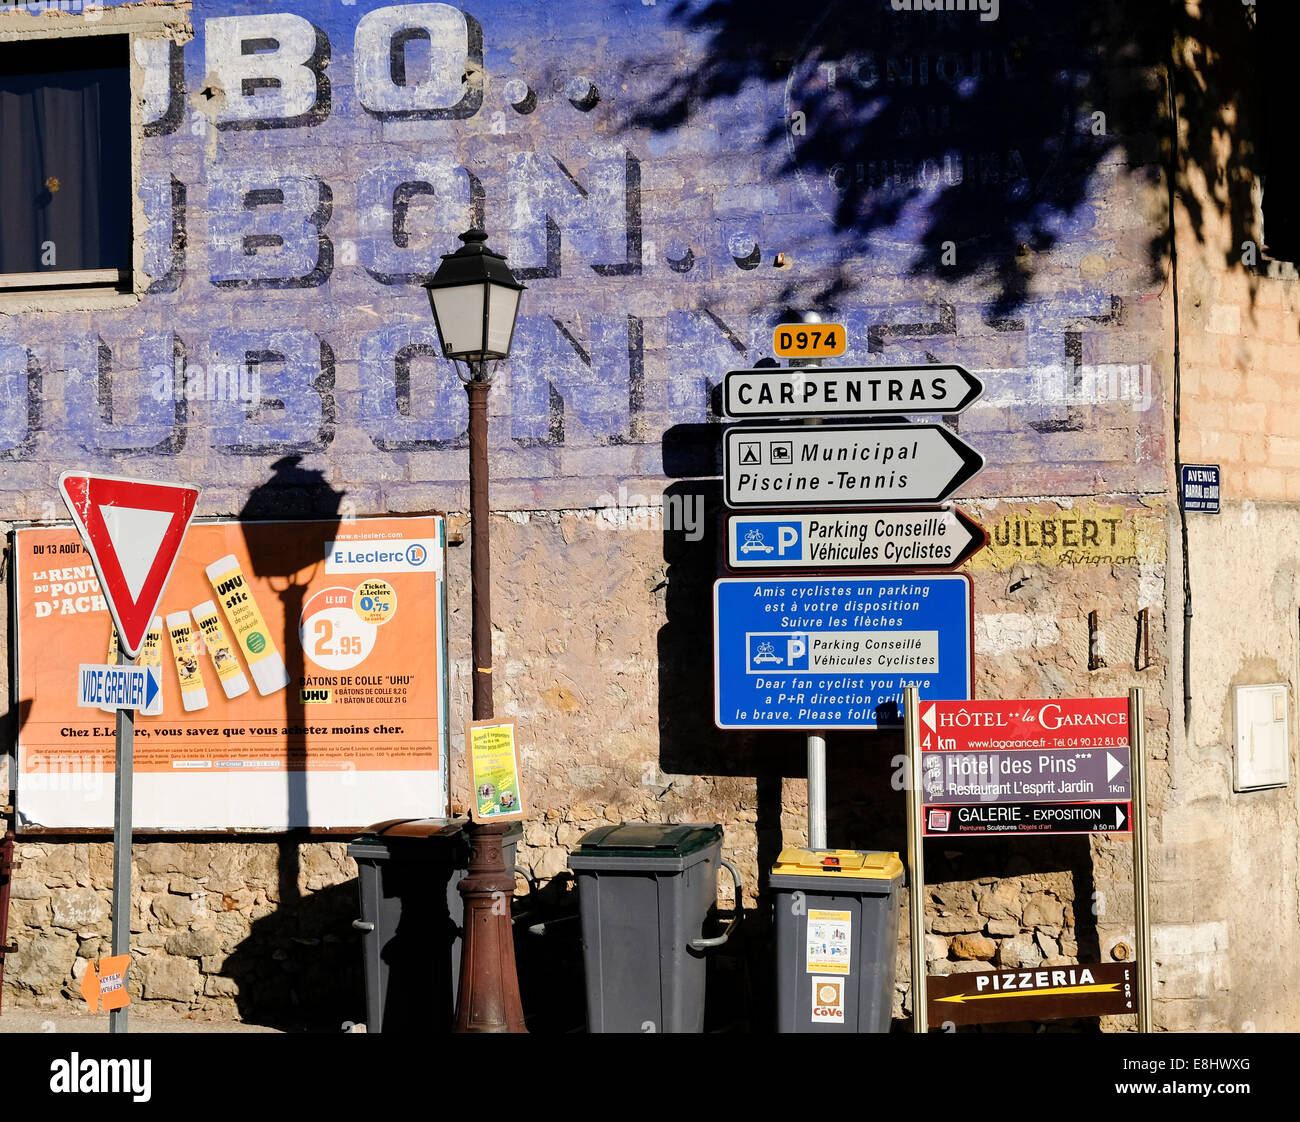 Signs and old faded advert on a wall, Bedoin, Provence, France - Stock Image